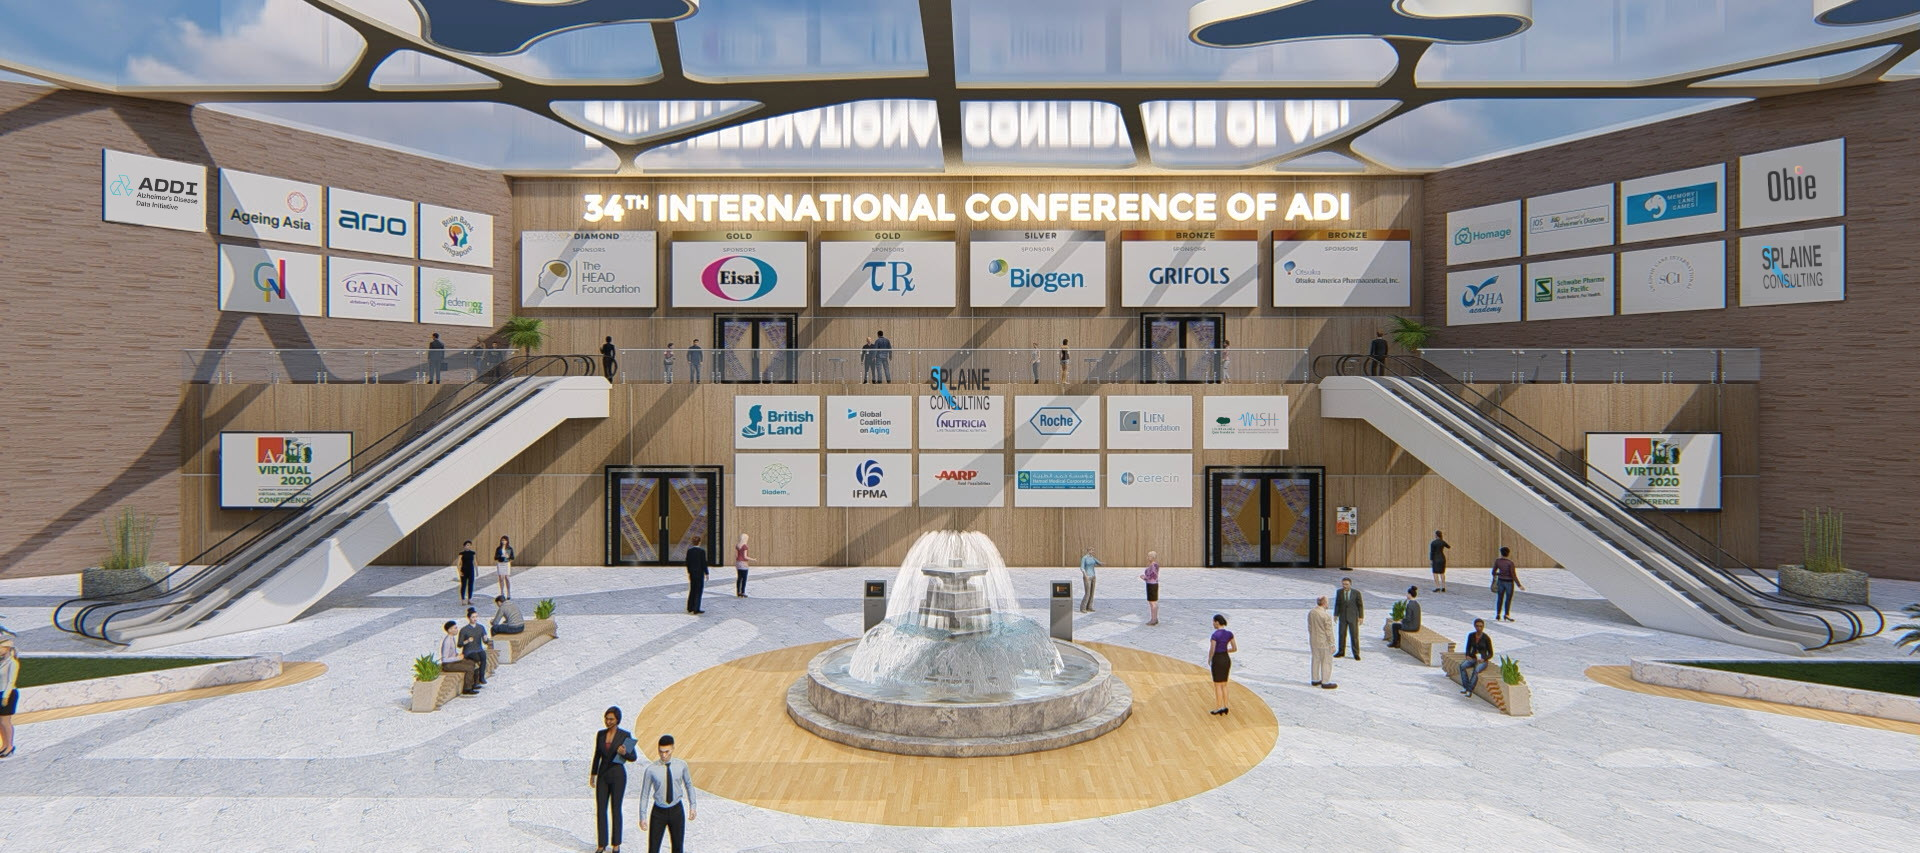 The virtual conference lobby of the 34th International Conference of ADI